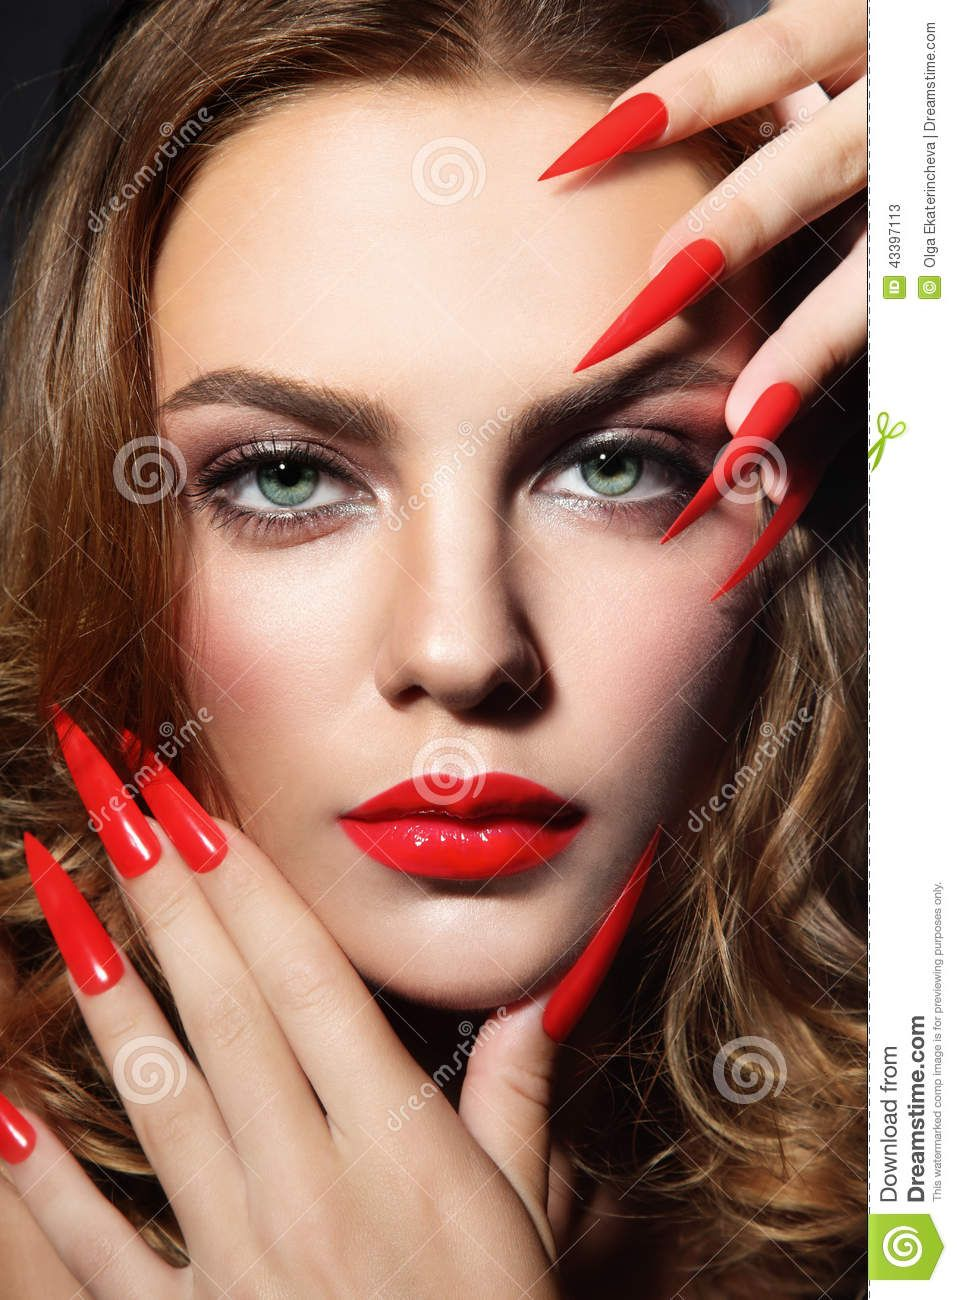 long pointy nails - Google Search   Pointy Fashion Nails   Pinterest ...